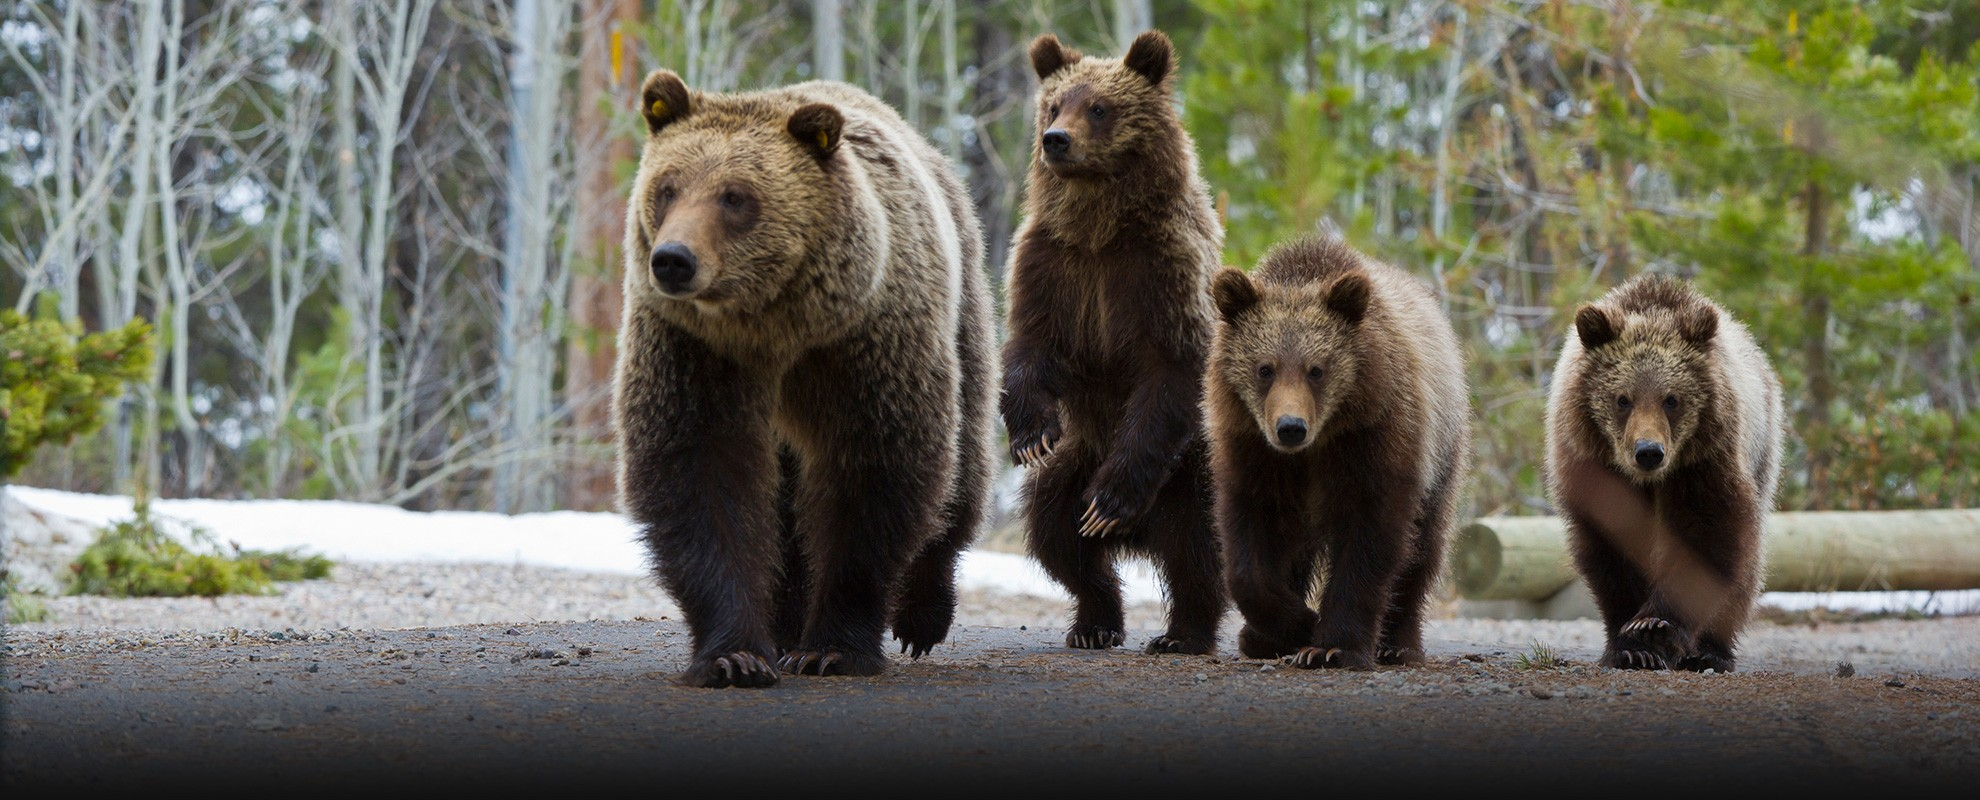 Grizzly 610 walks down a park road with her three cubs in springtime.